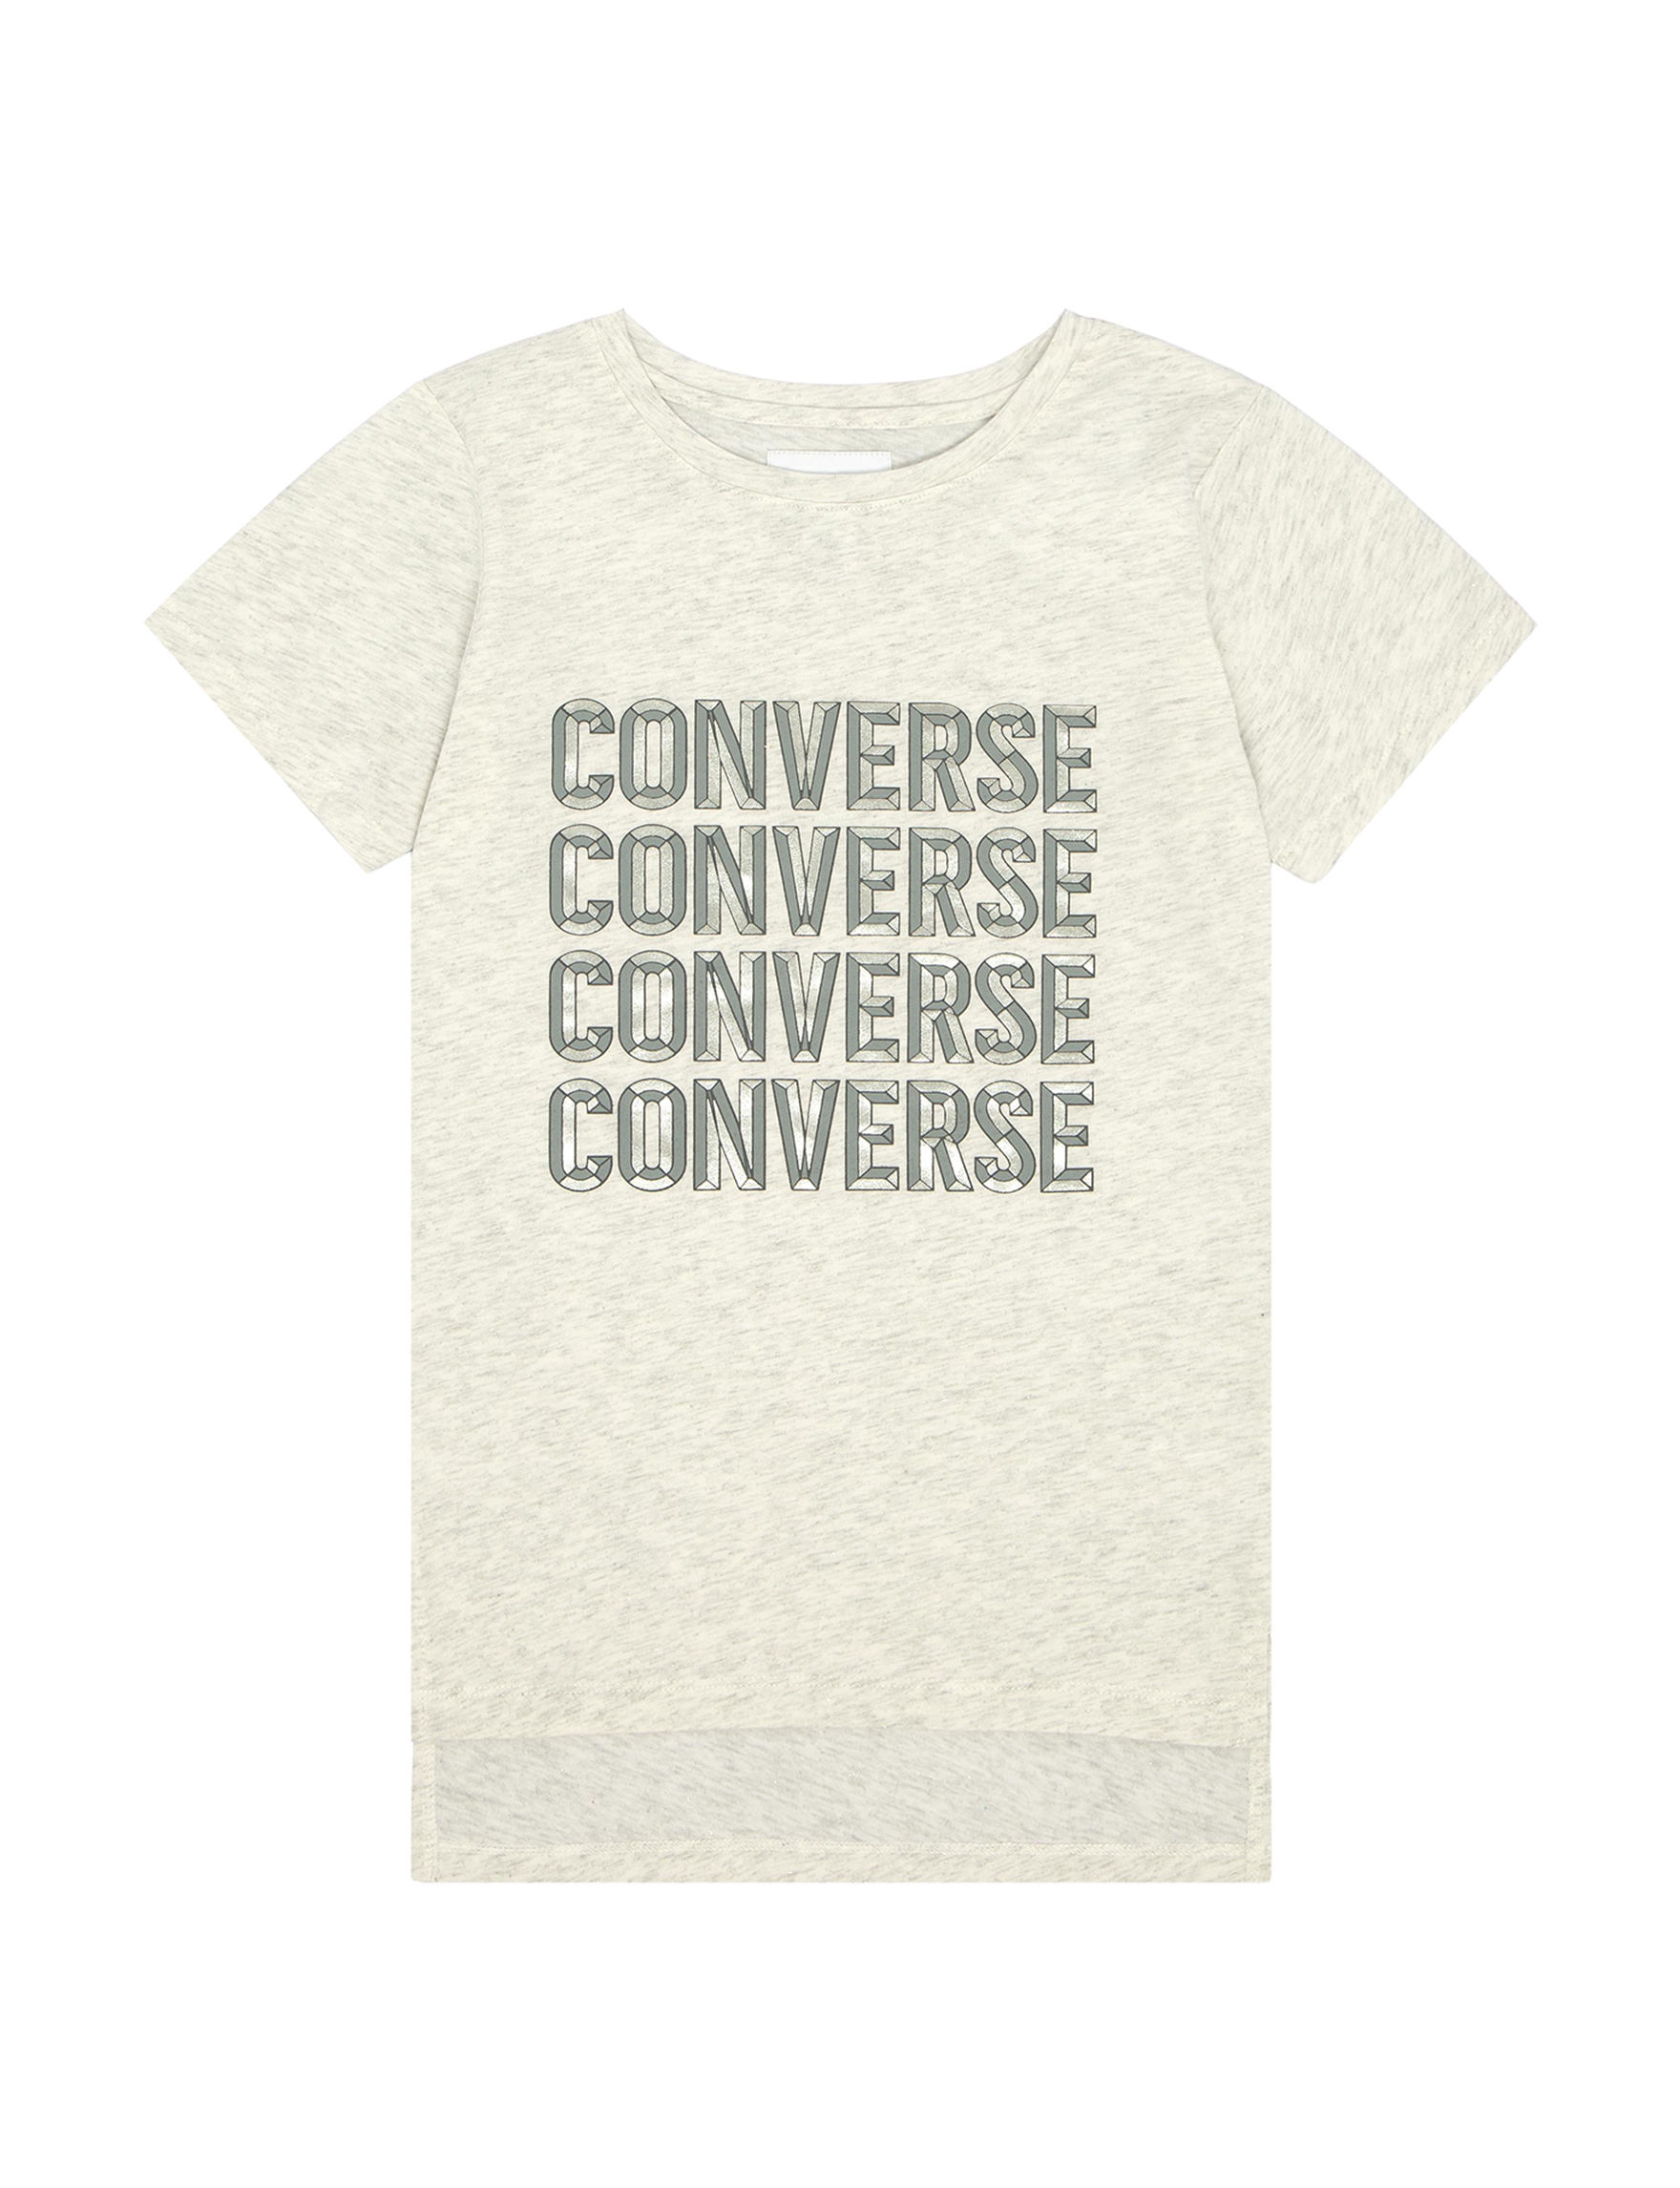 Converse White / Heather Grey Tees & Tanks